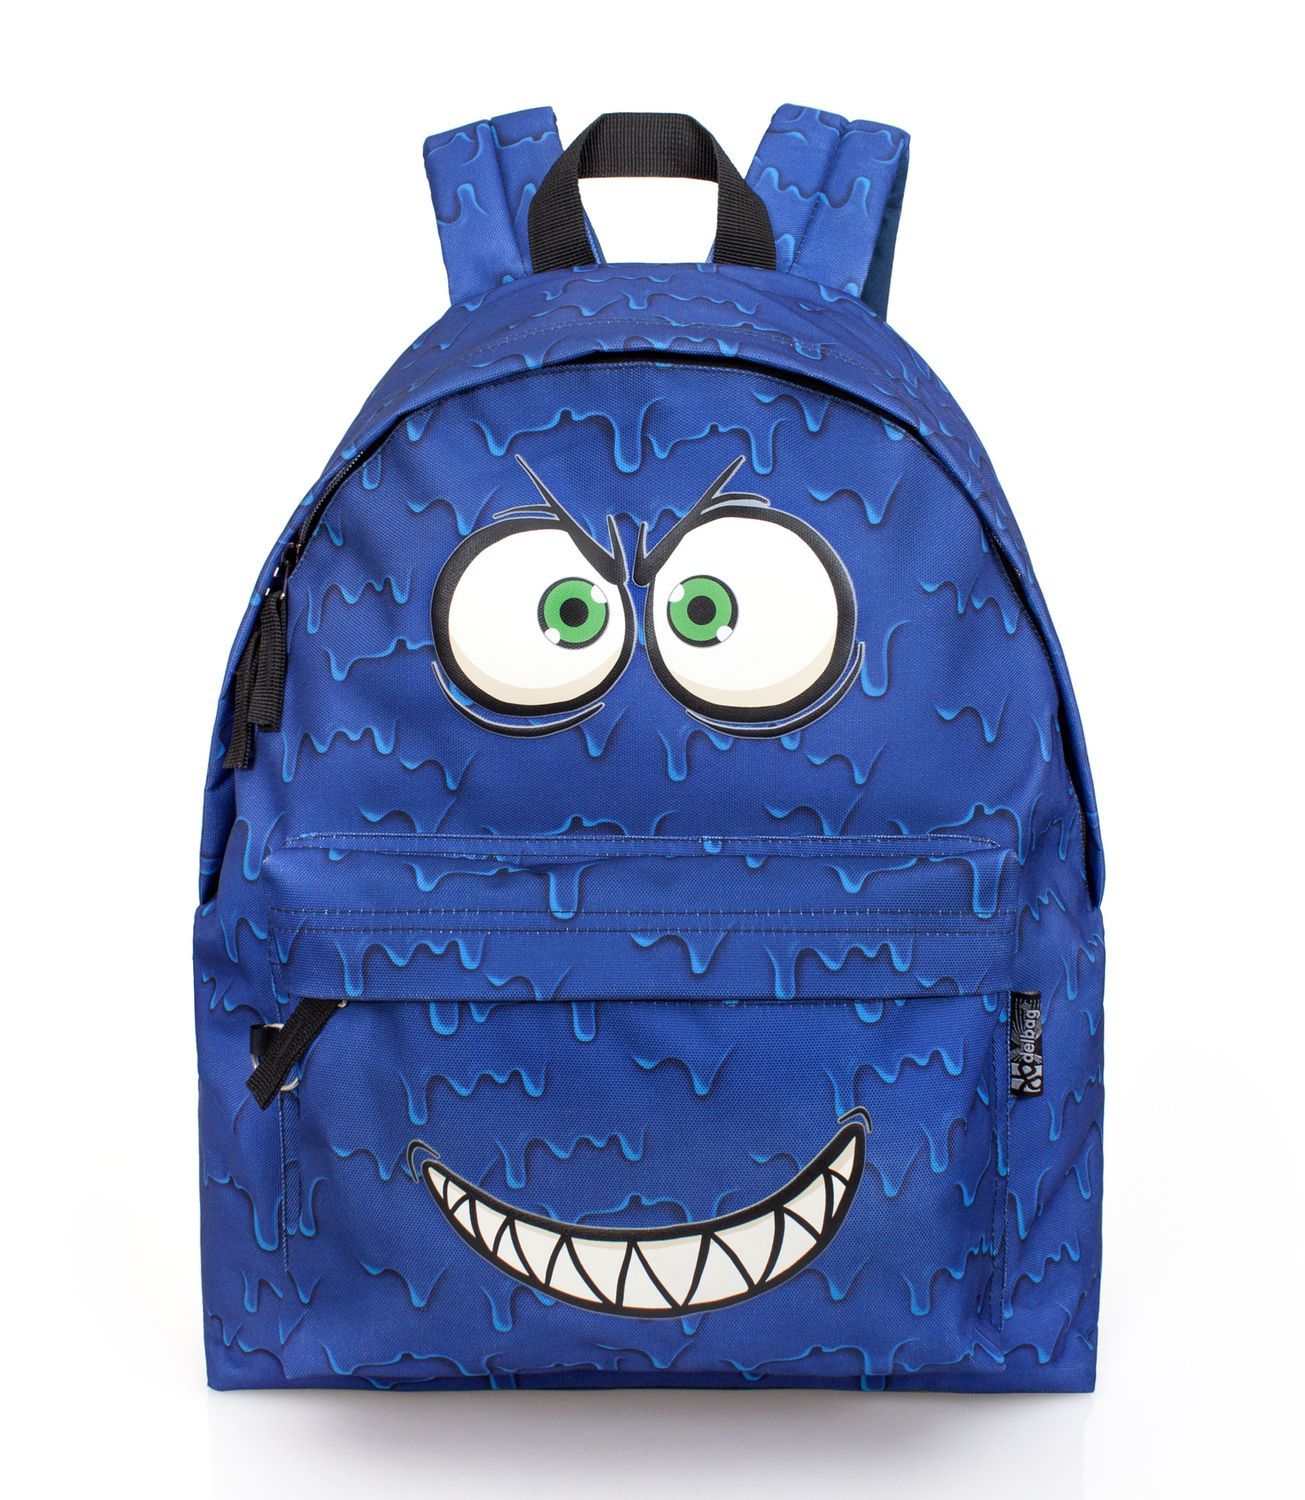 Delbag Crazy Smile Backpack Blue